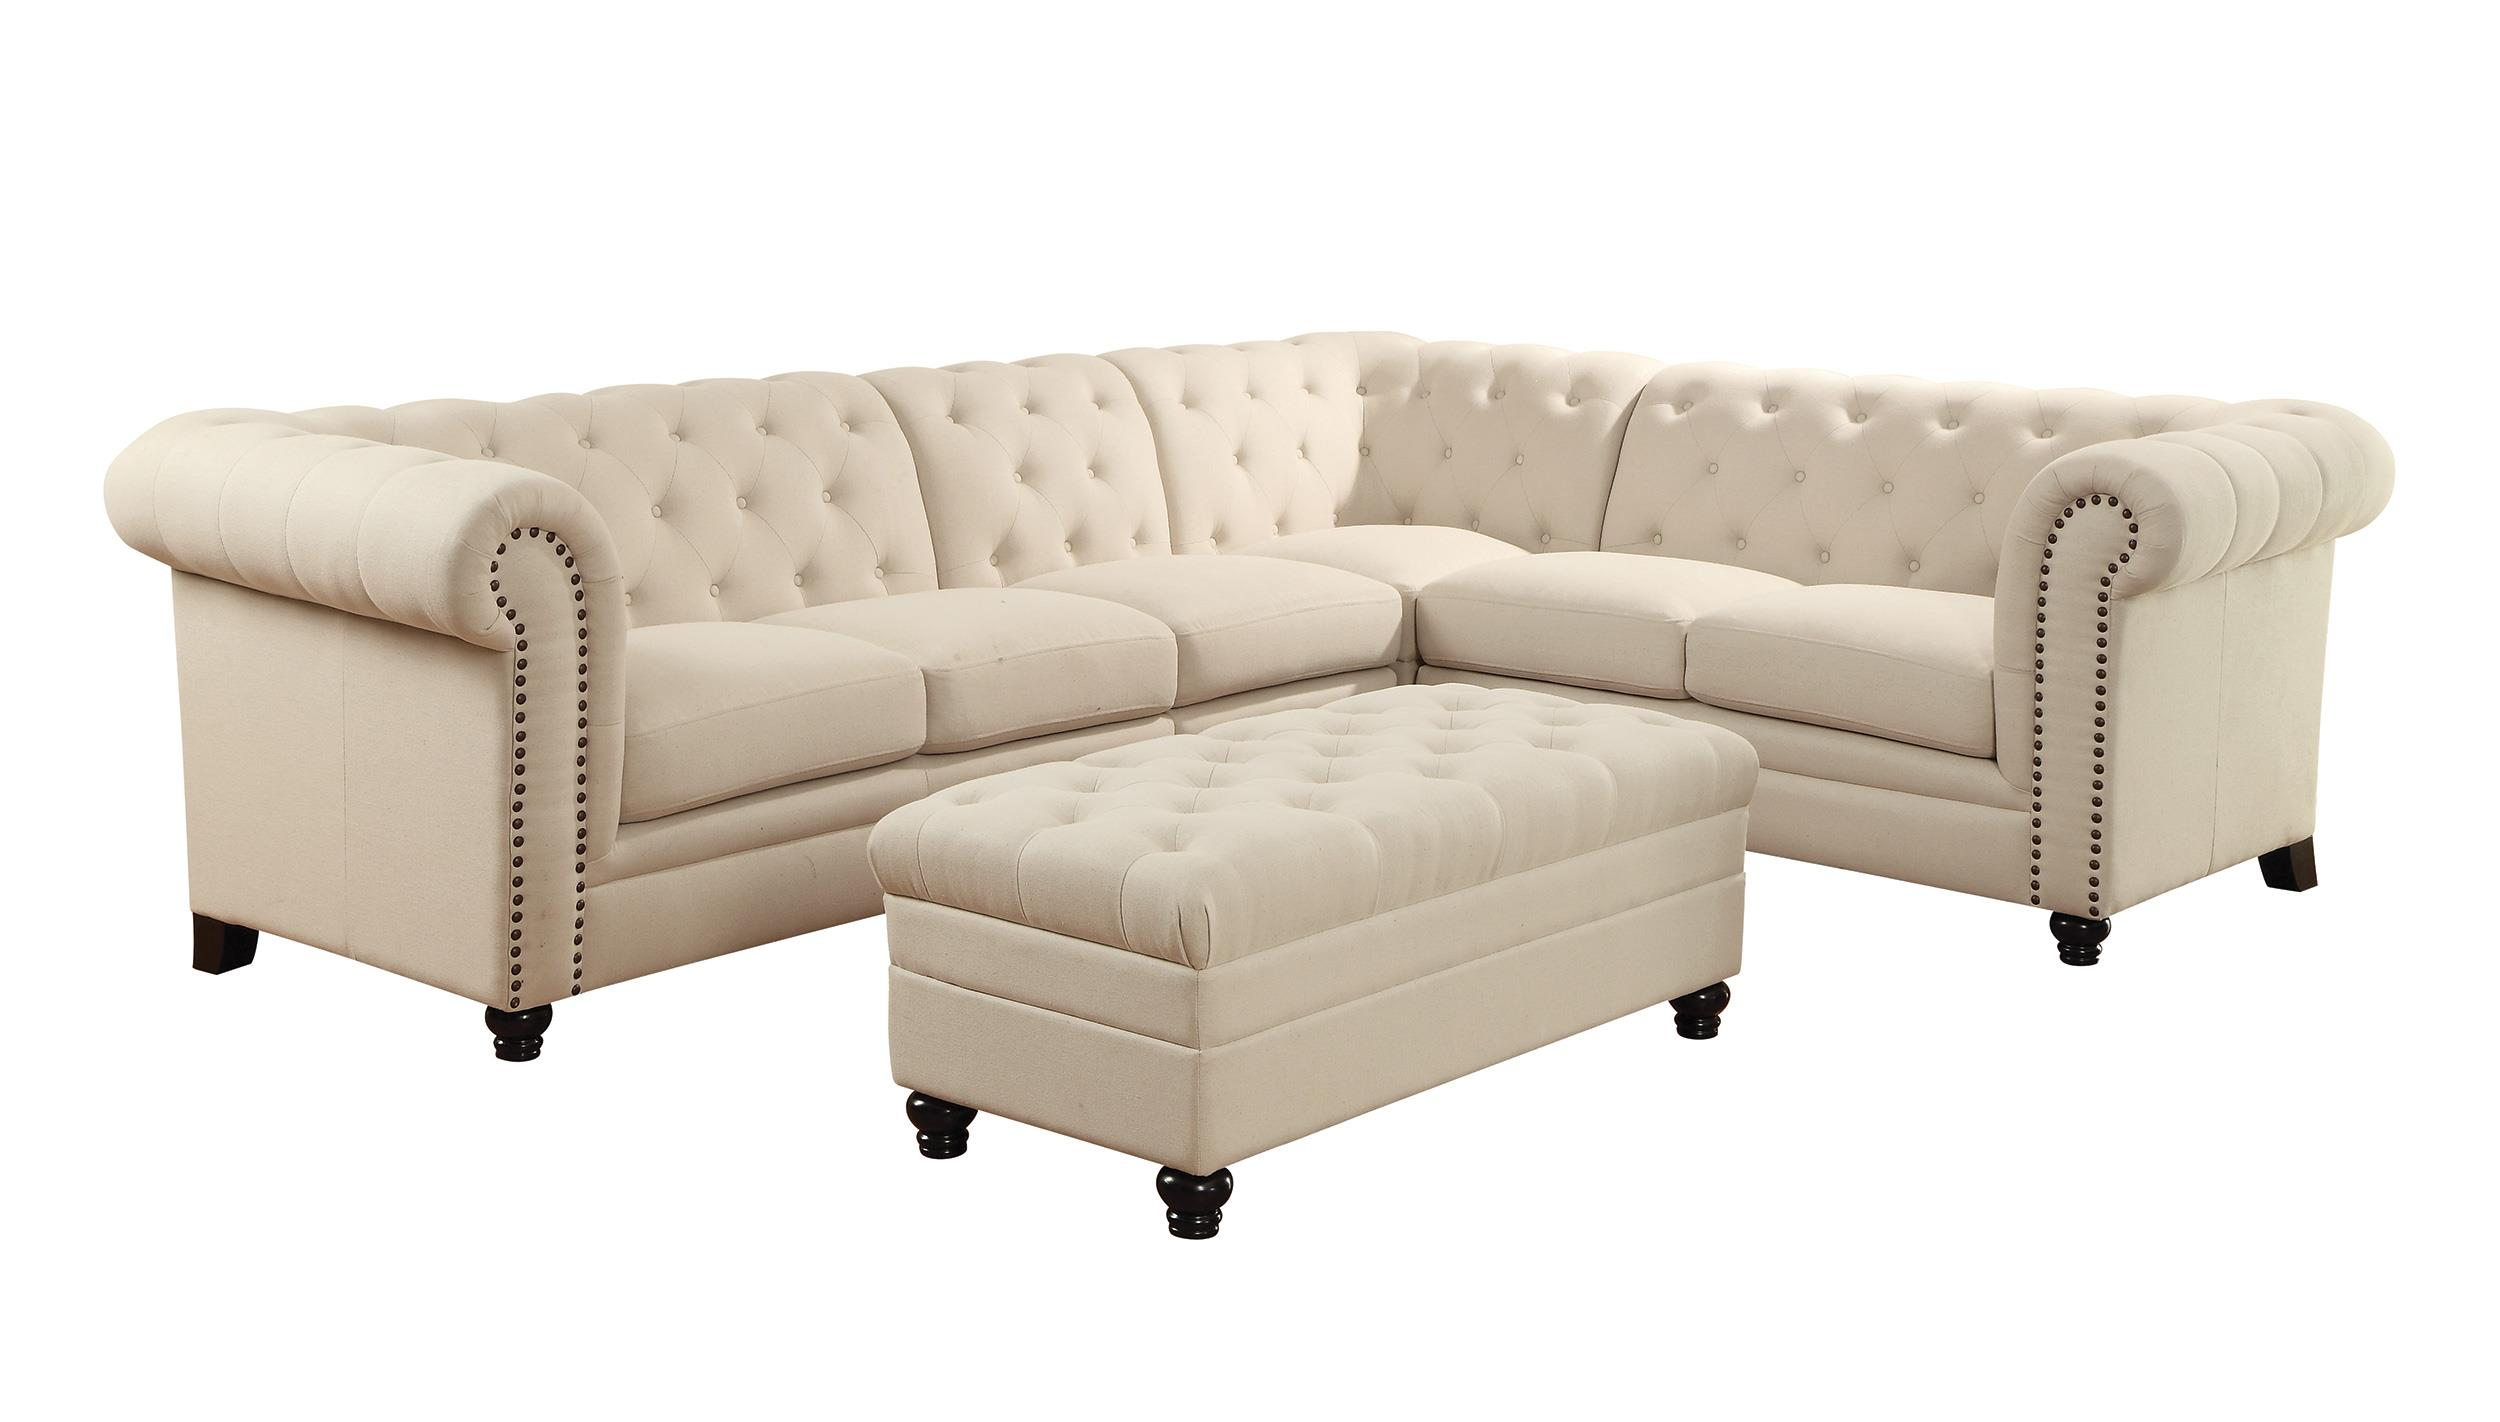 coaster roy button tufted sectional sofa with armless With roy button tufted sectional sofa with armless chair